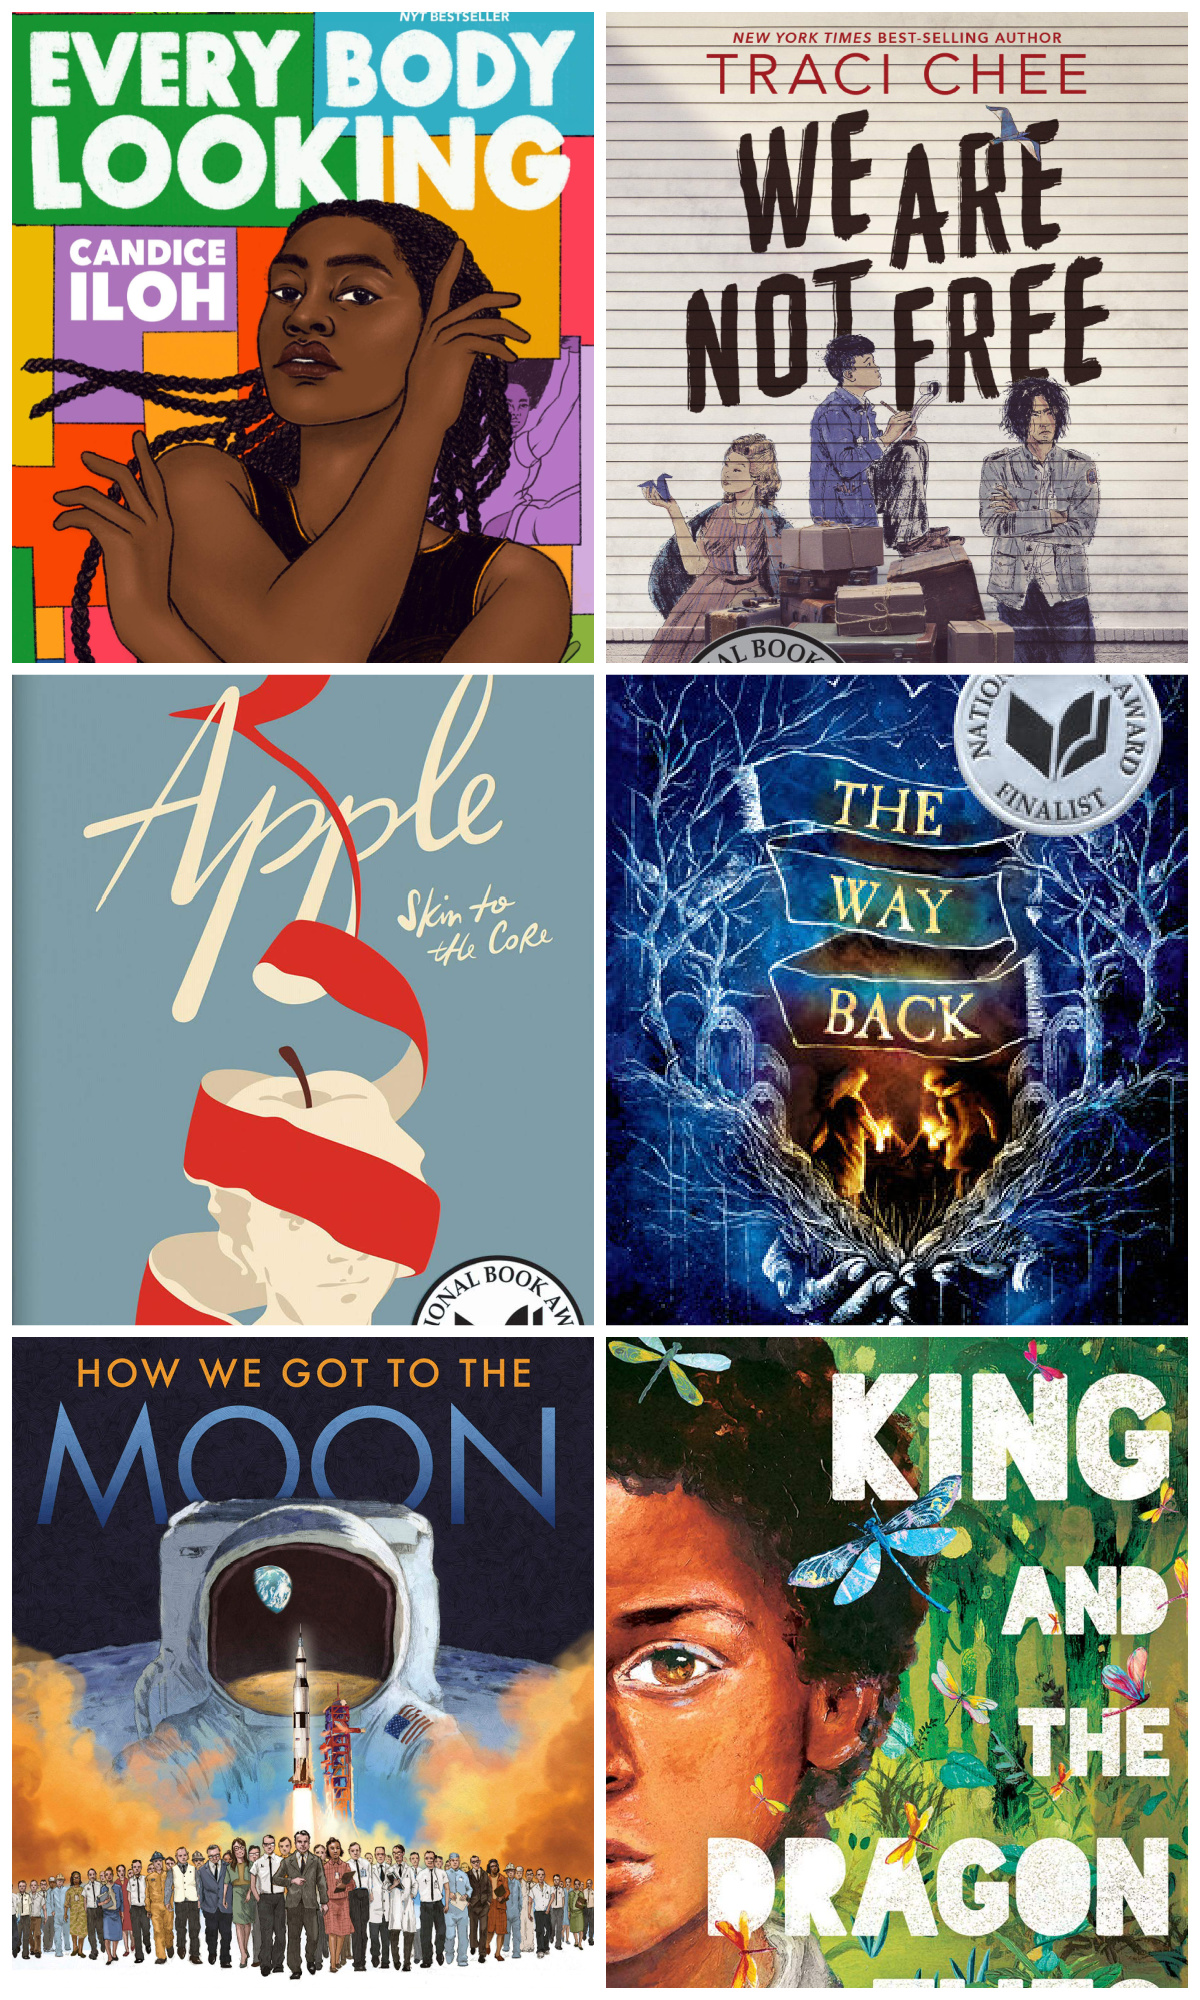 10 best gifts for teens : National Book Award Finalists in Young People's Literature | Small Business Holiday Gifts 2020